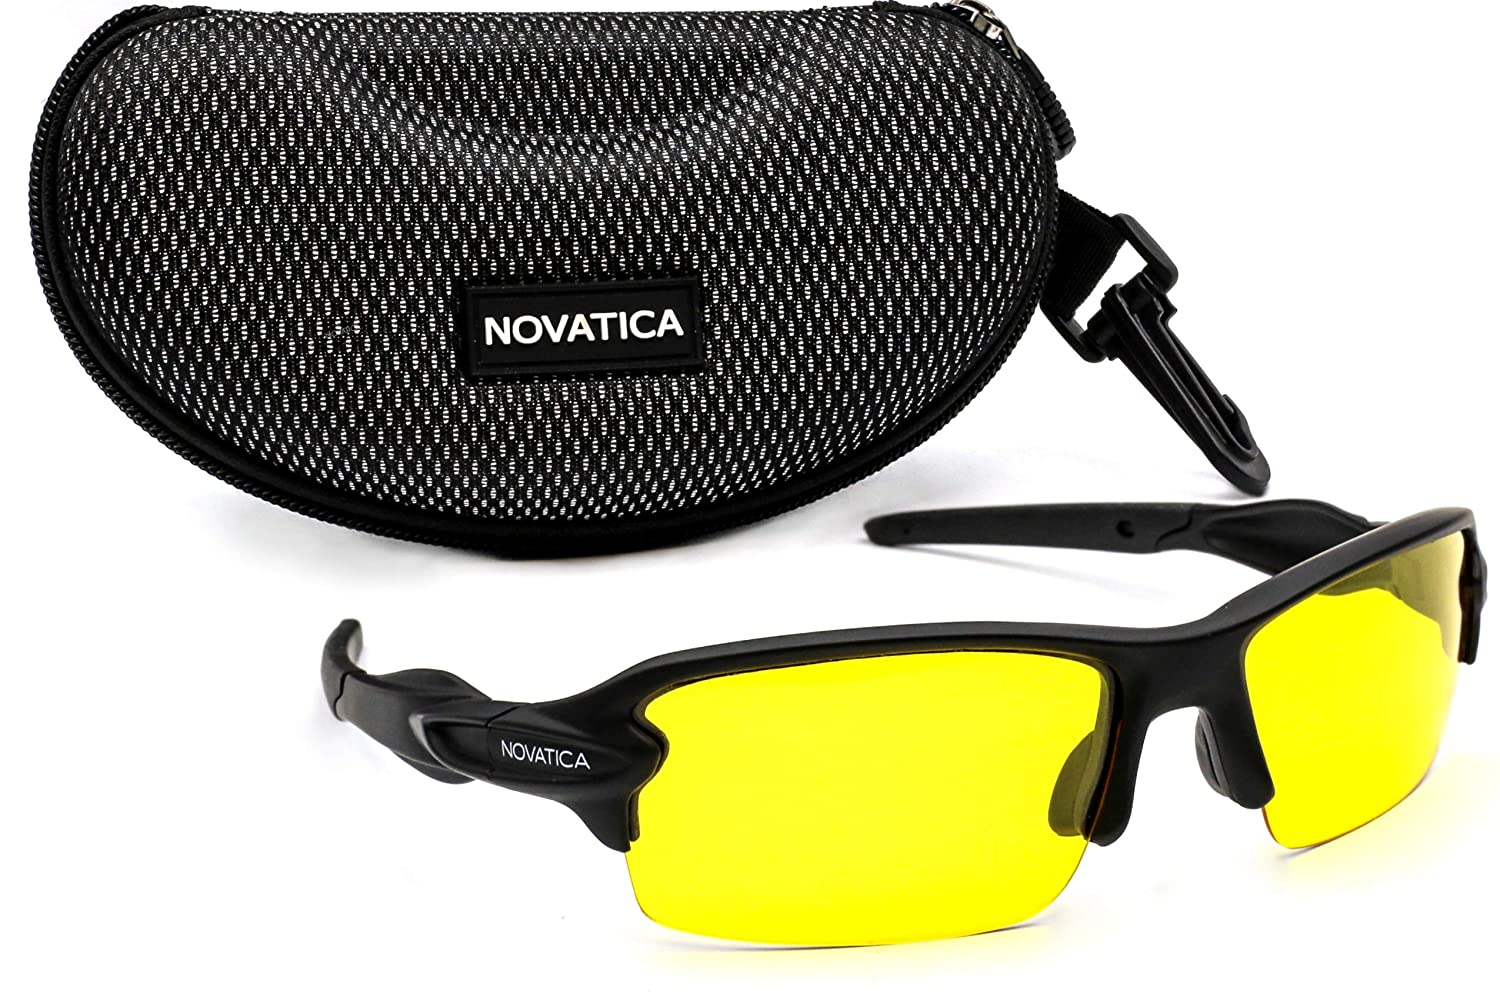 a39dc3a87ed NOVATICA Anti Glare Night Driving Polarized TAC Glasses - HD Night Vision -  UV Protection - Sport Sunglasses - Men   Women - Yellow TAC Clear Lenses ...